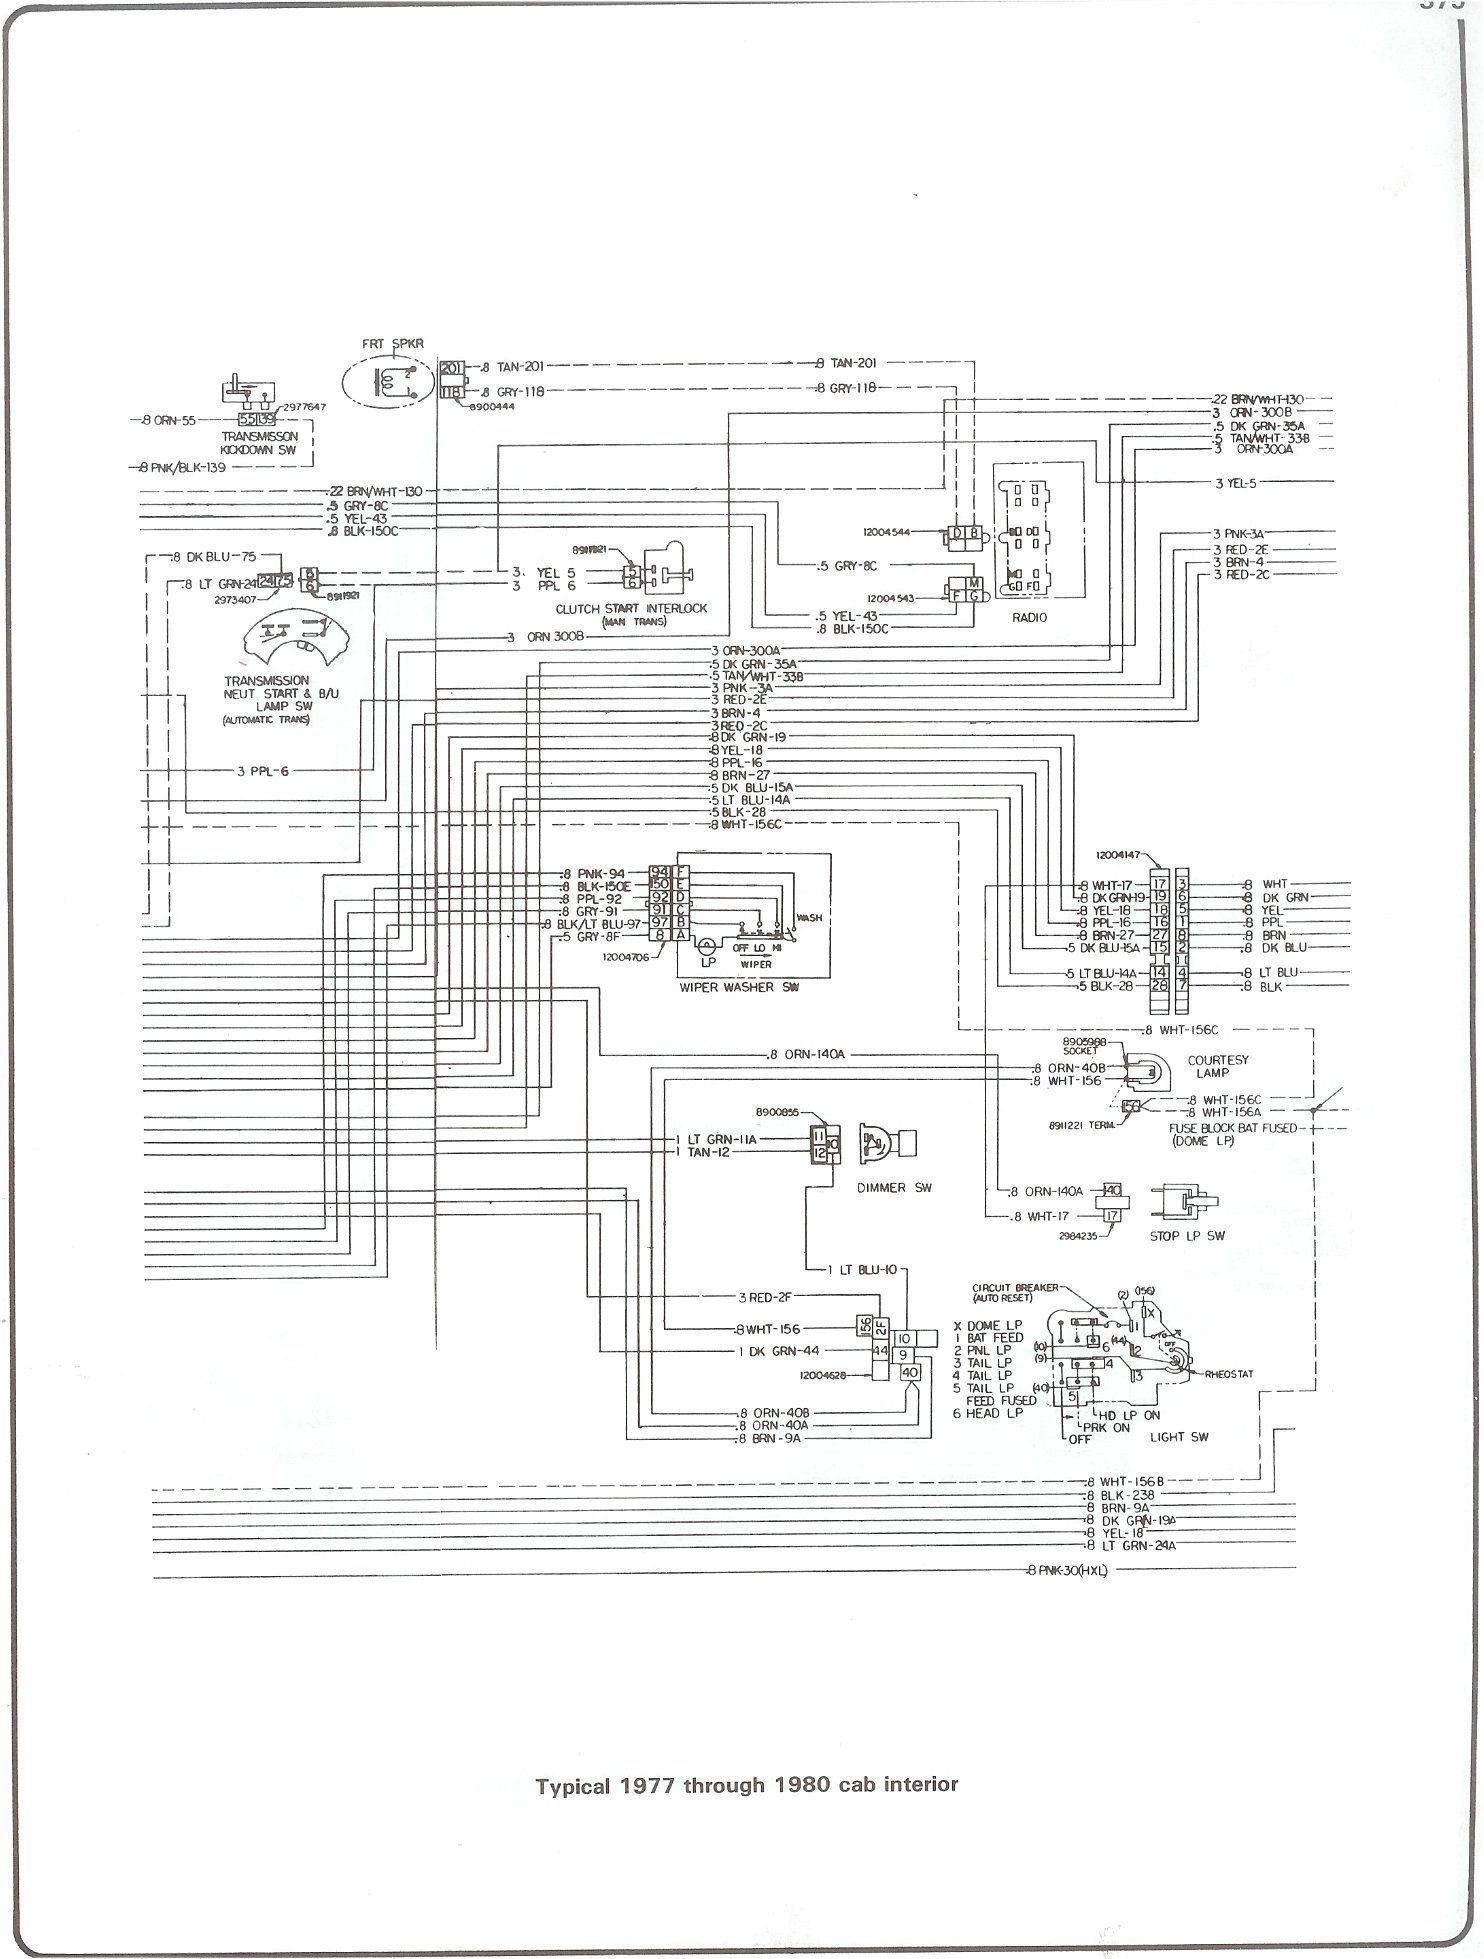 77 80_cab_inter complete 73 87 wiring diagrams 78 chevy truck wiring diagram at readyjetset.co